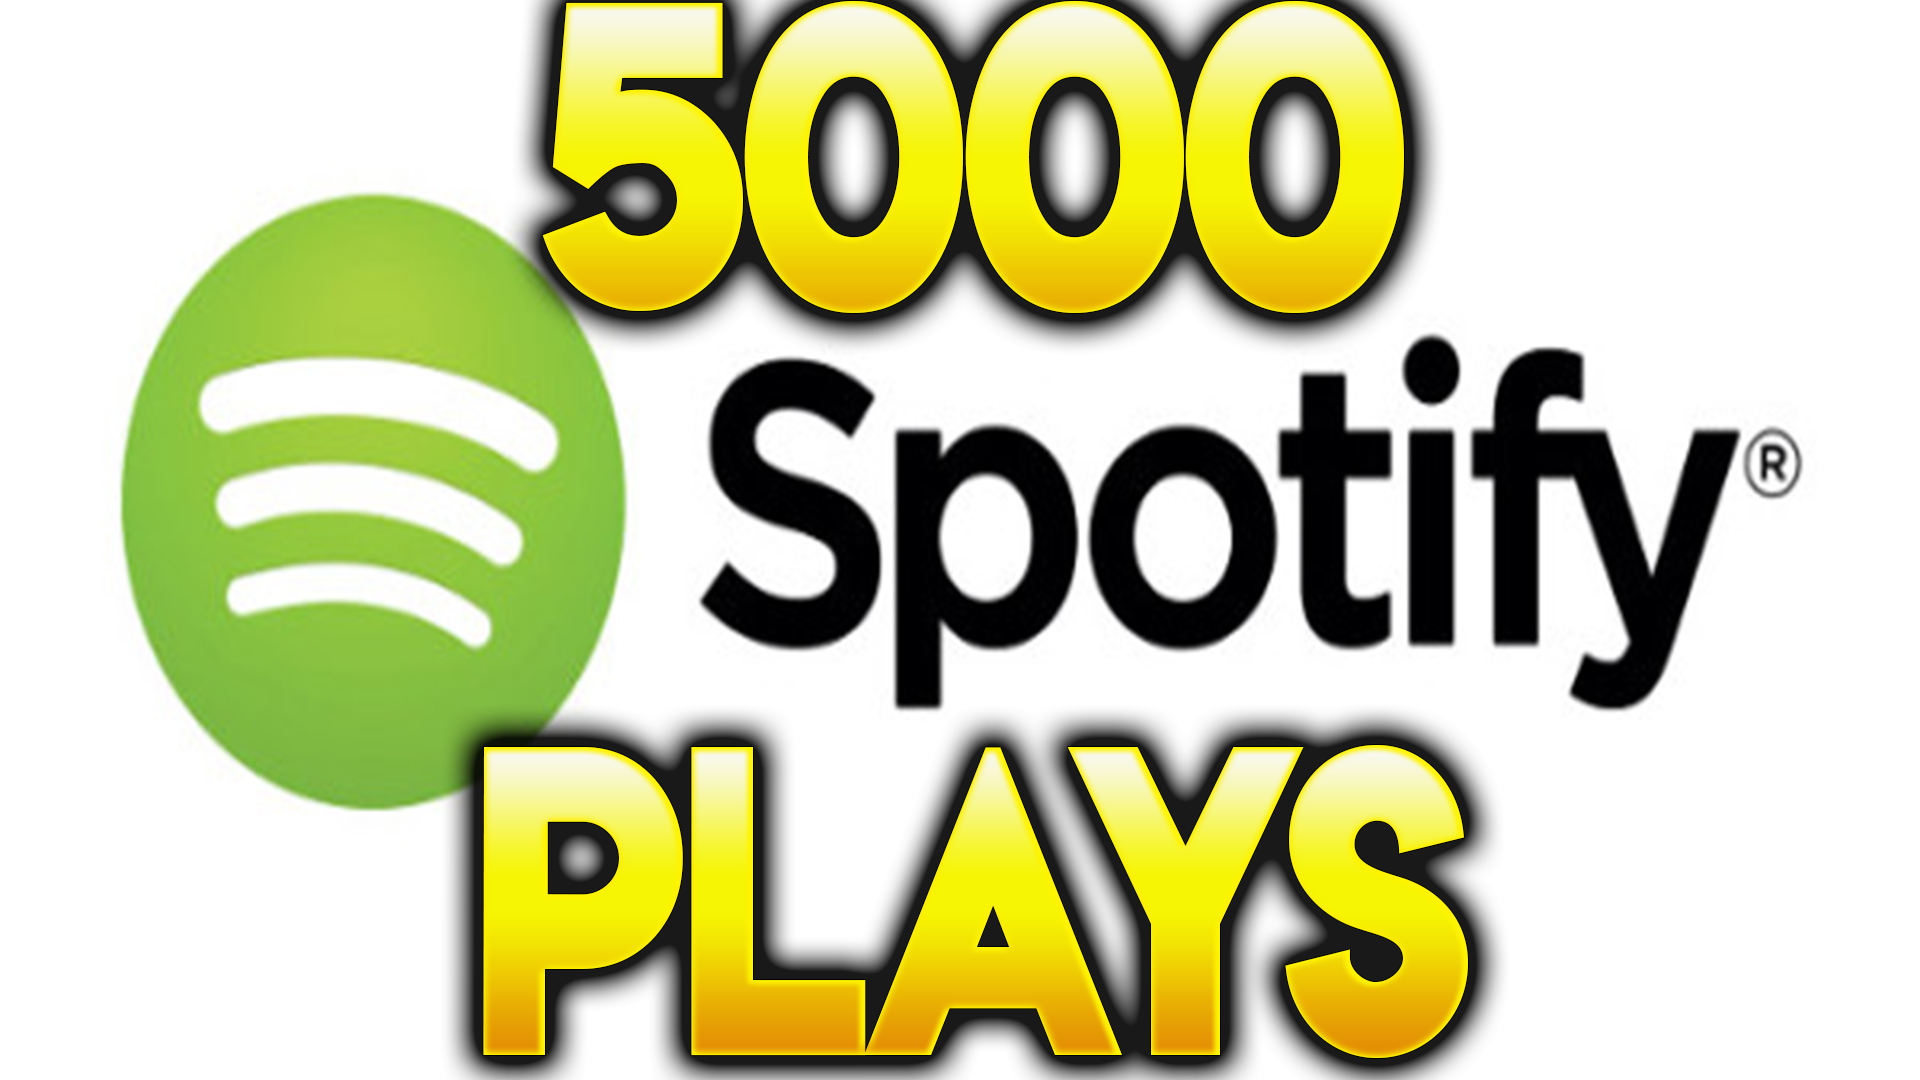 I will provide 5000 high quality Spotify plays - Gigsdy